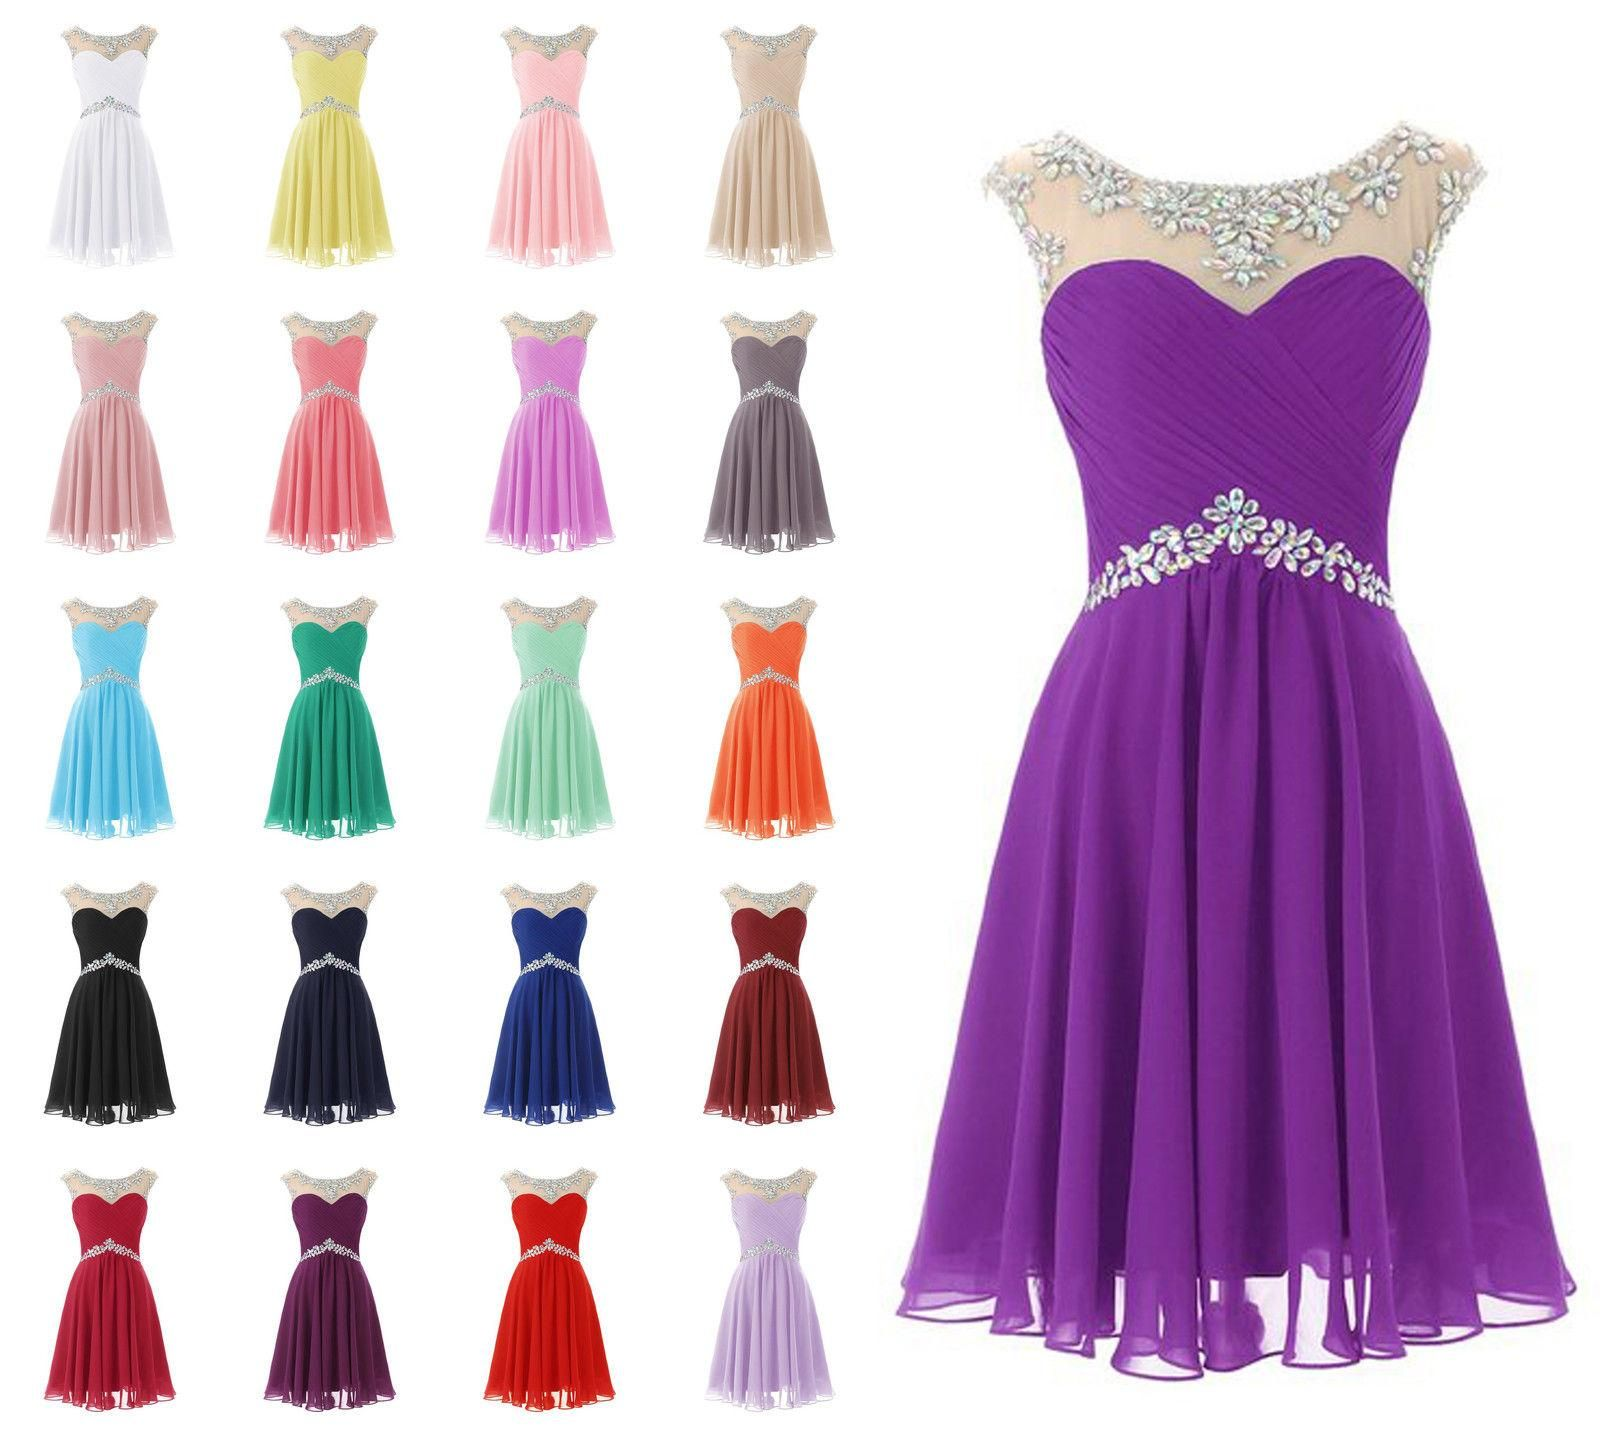 Prepare the plus size dresses for the upcoming prom? Then you need